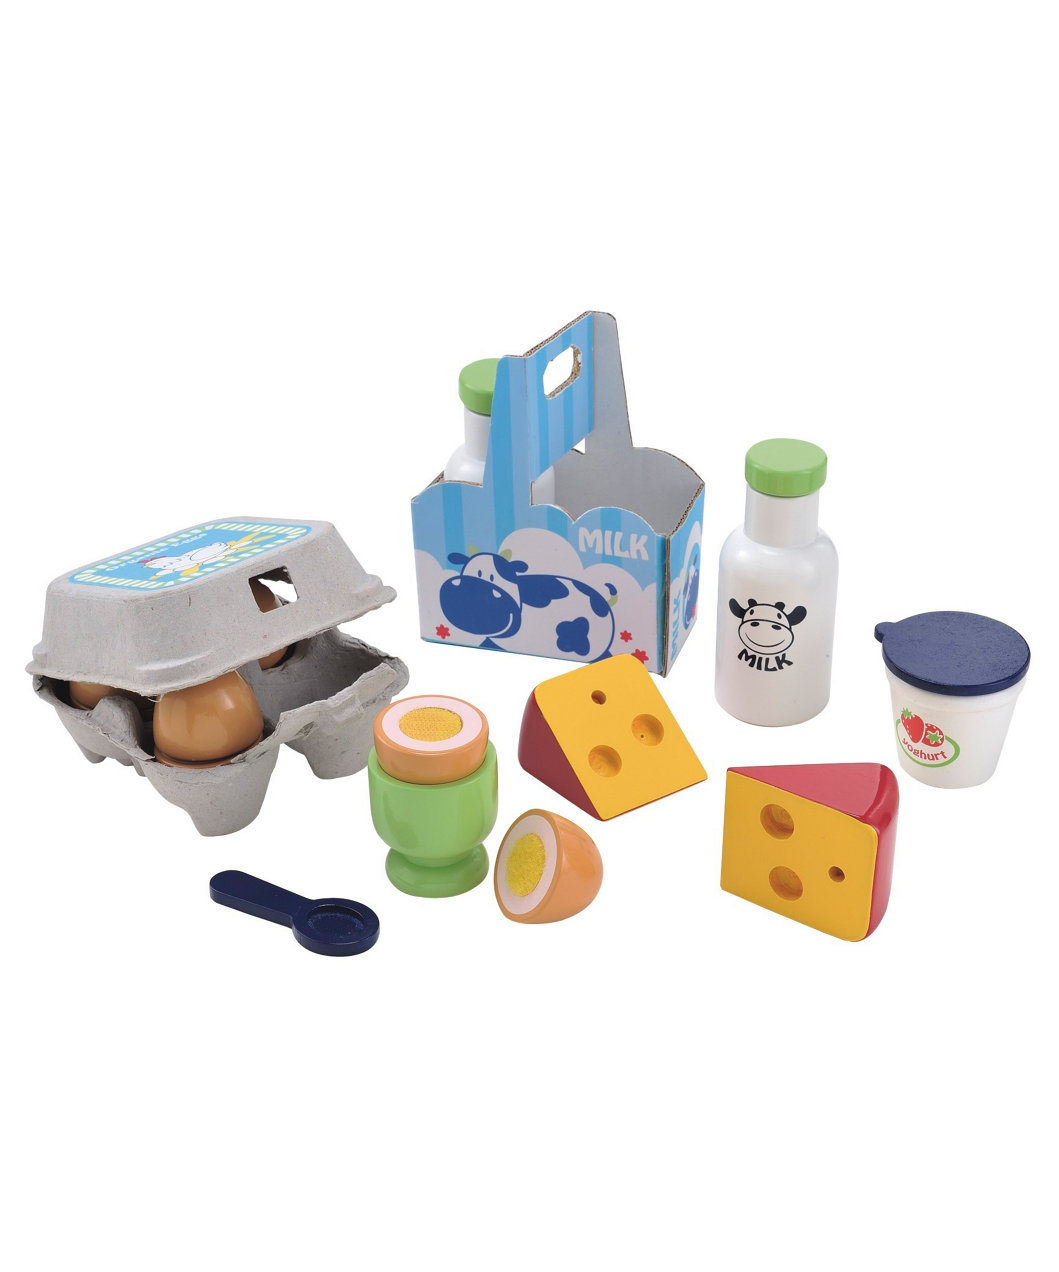 Elc Bosch Kitchen Set